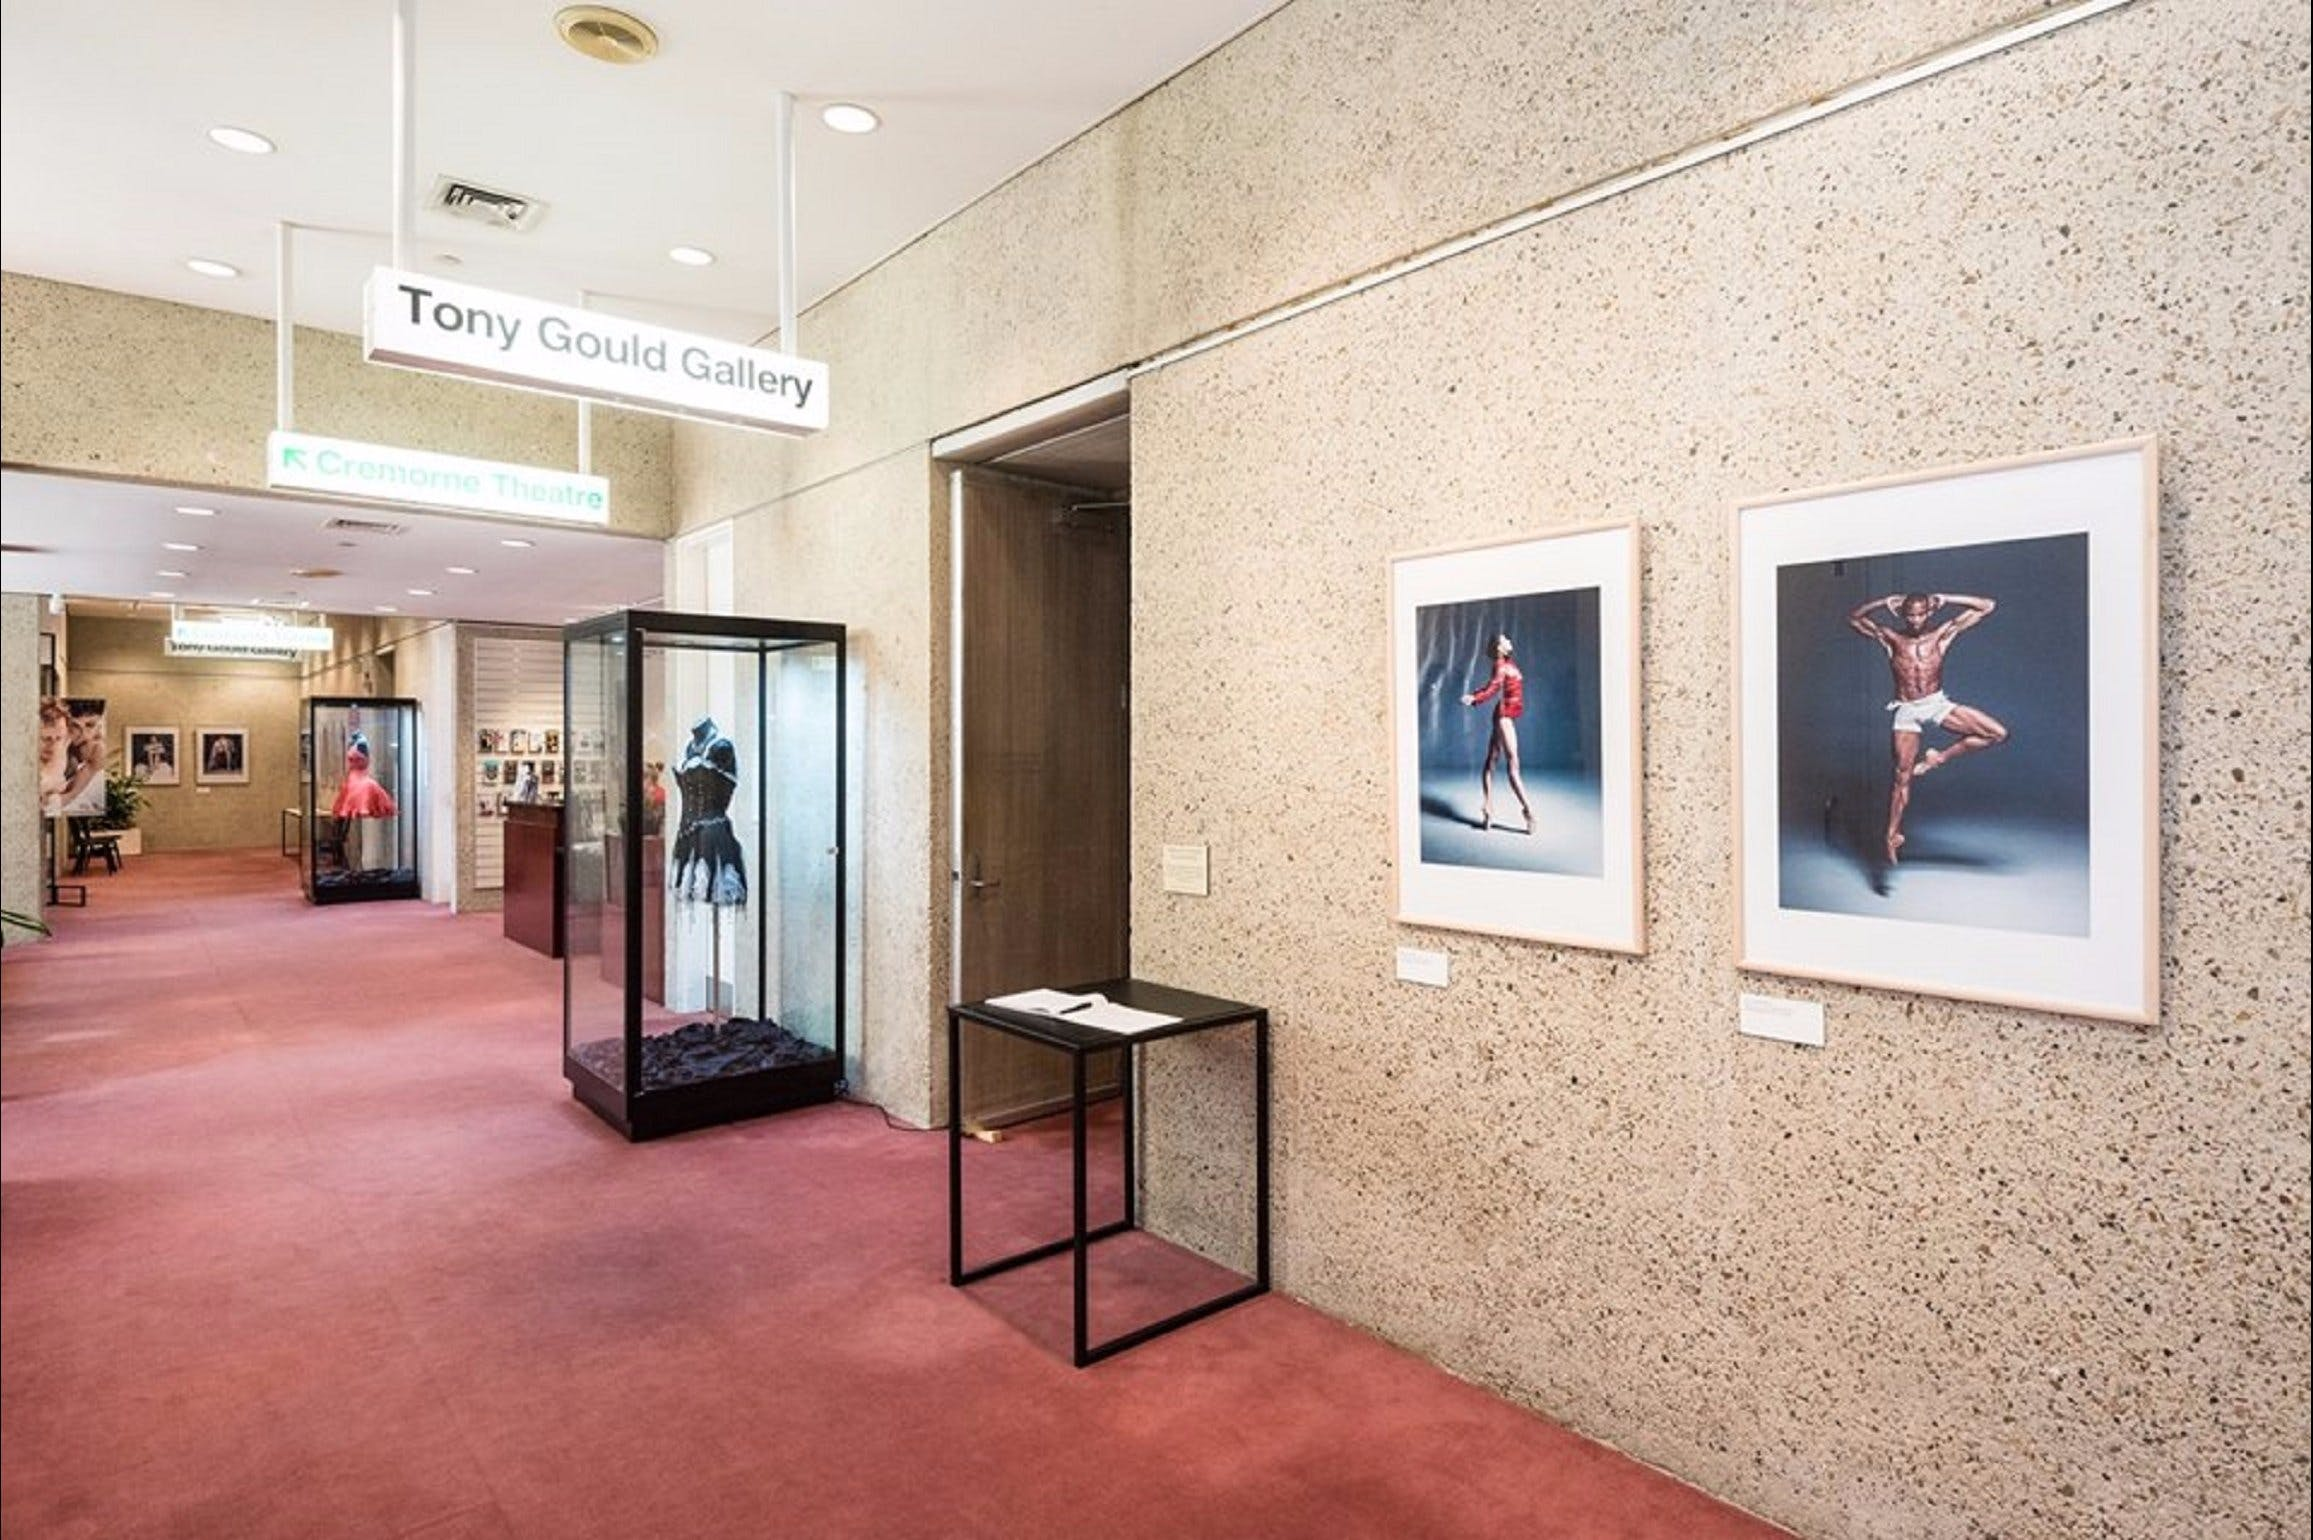 Tony Gould Gallery - Australia Accommodation